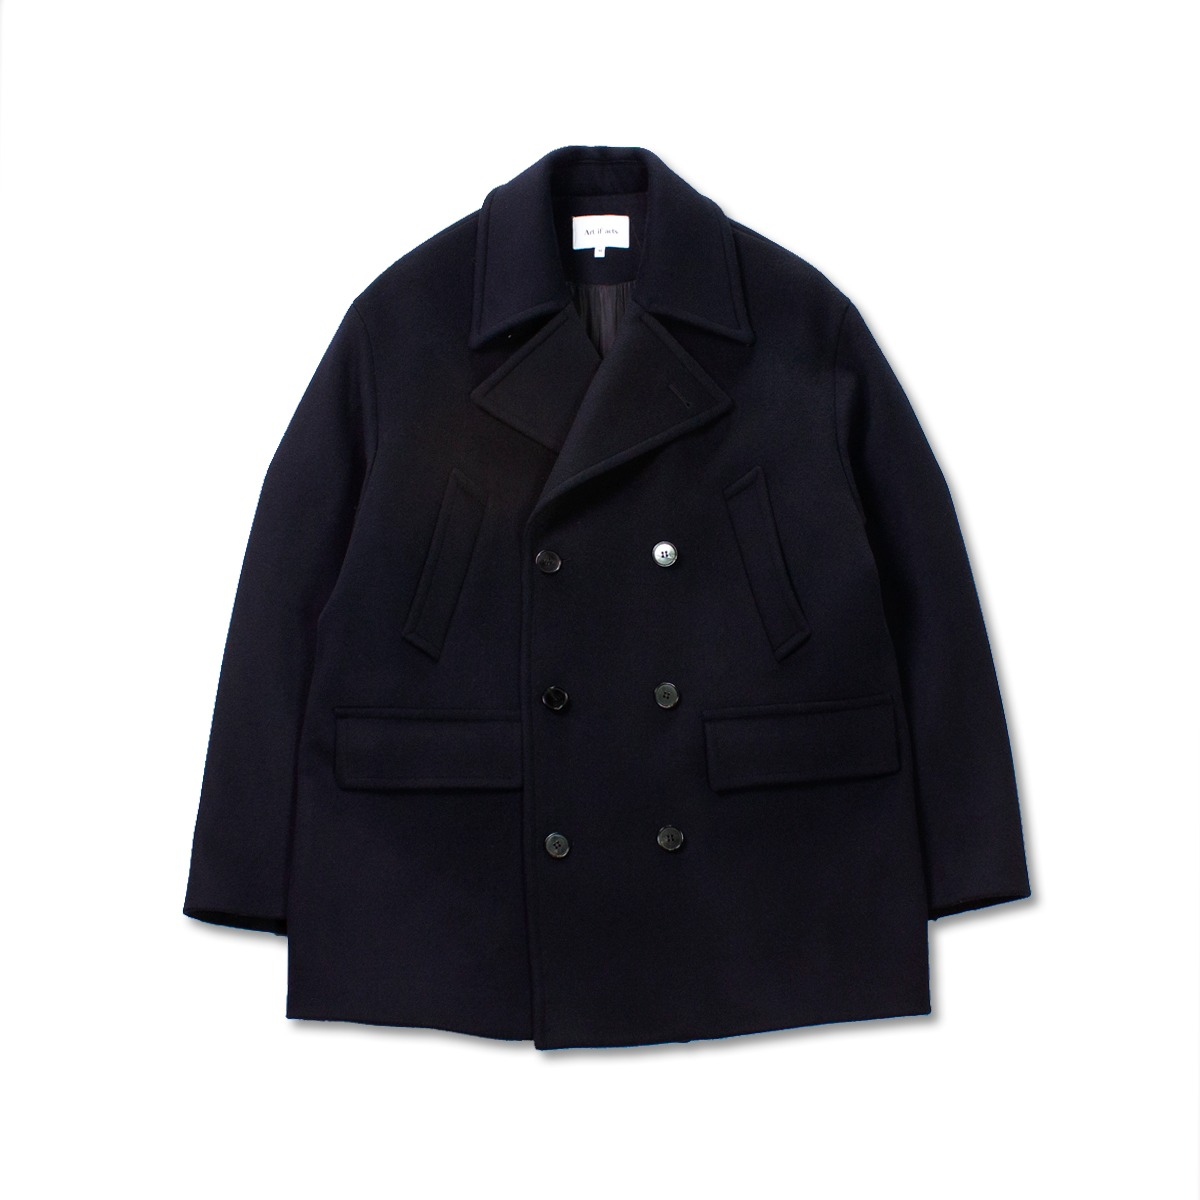 [ART IF ACTS] OVERSIZED PEA COAT 'NAVY'